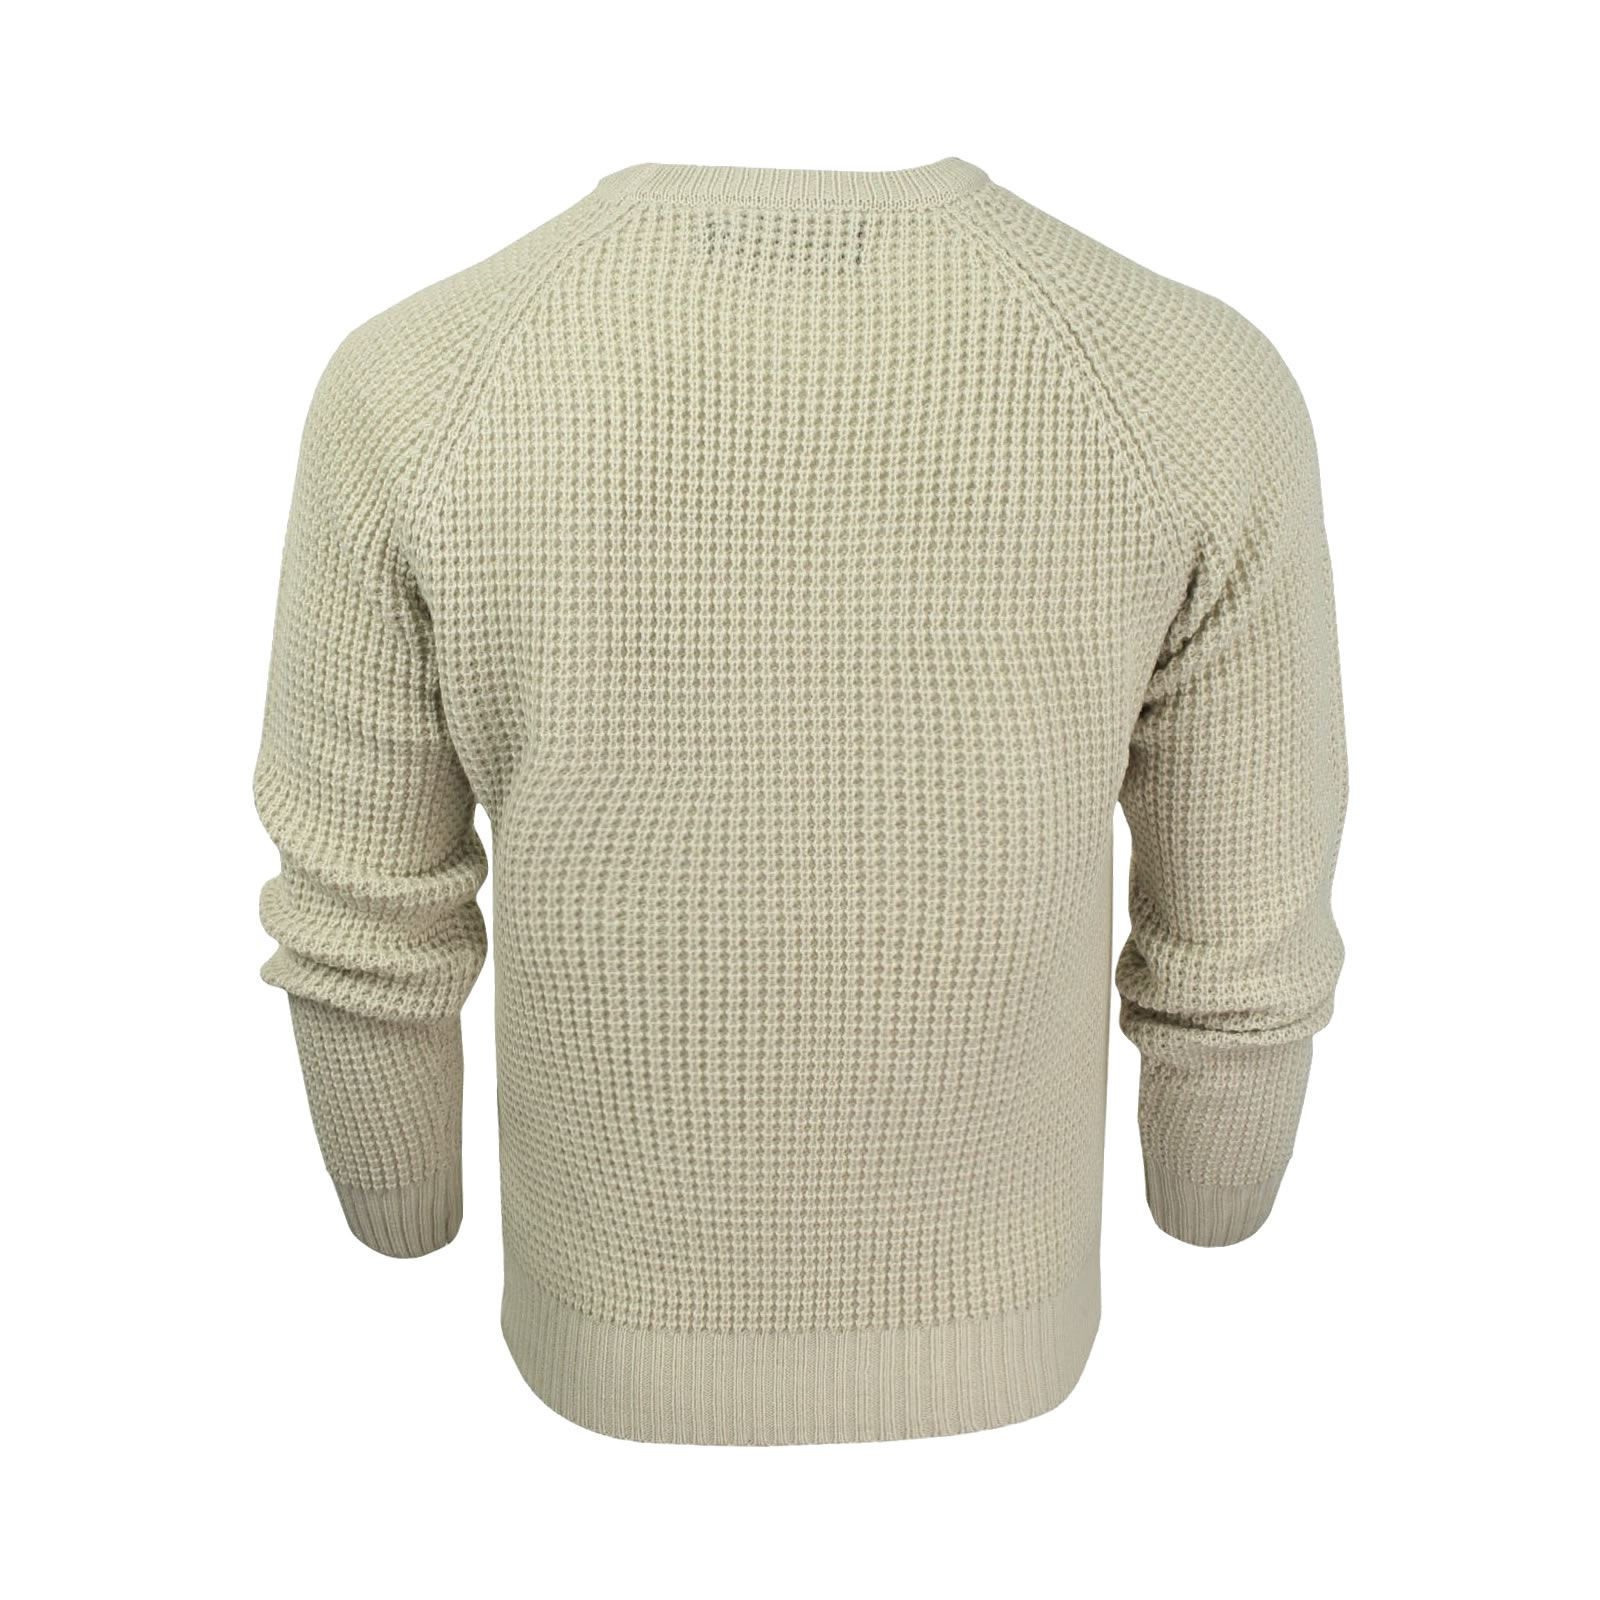 Mens-Jumper-Crosshatch-General-Waffle-Knitted-Crew-Neck-Wool-Mix-Sweater thumbnail 11